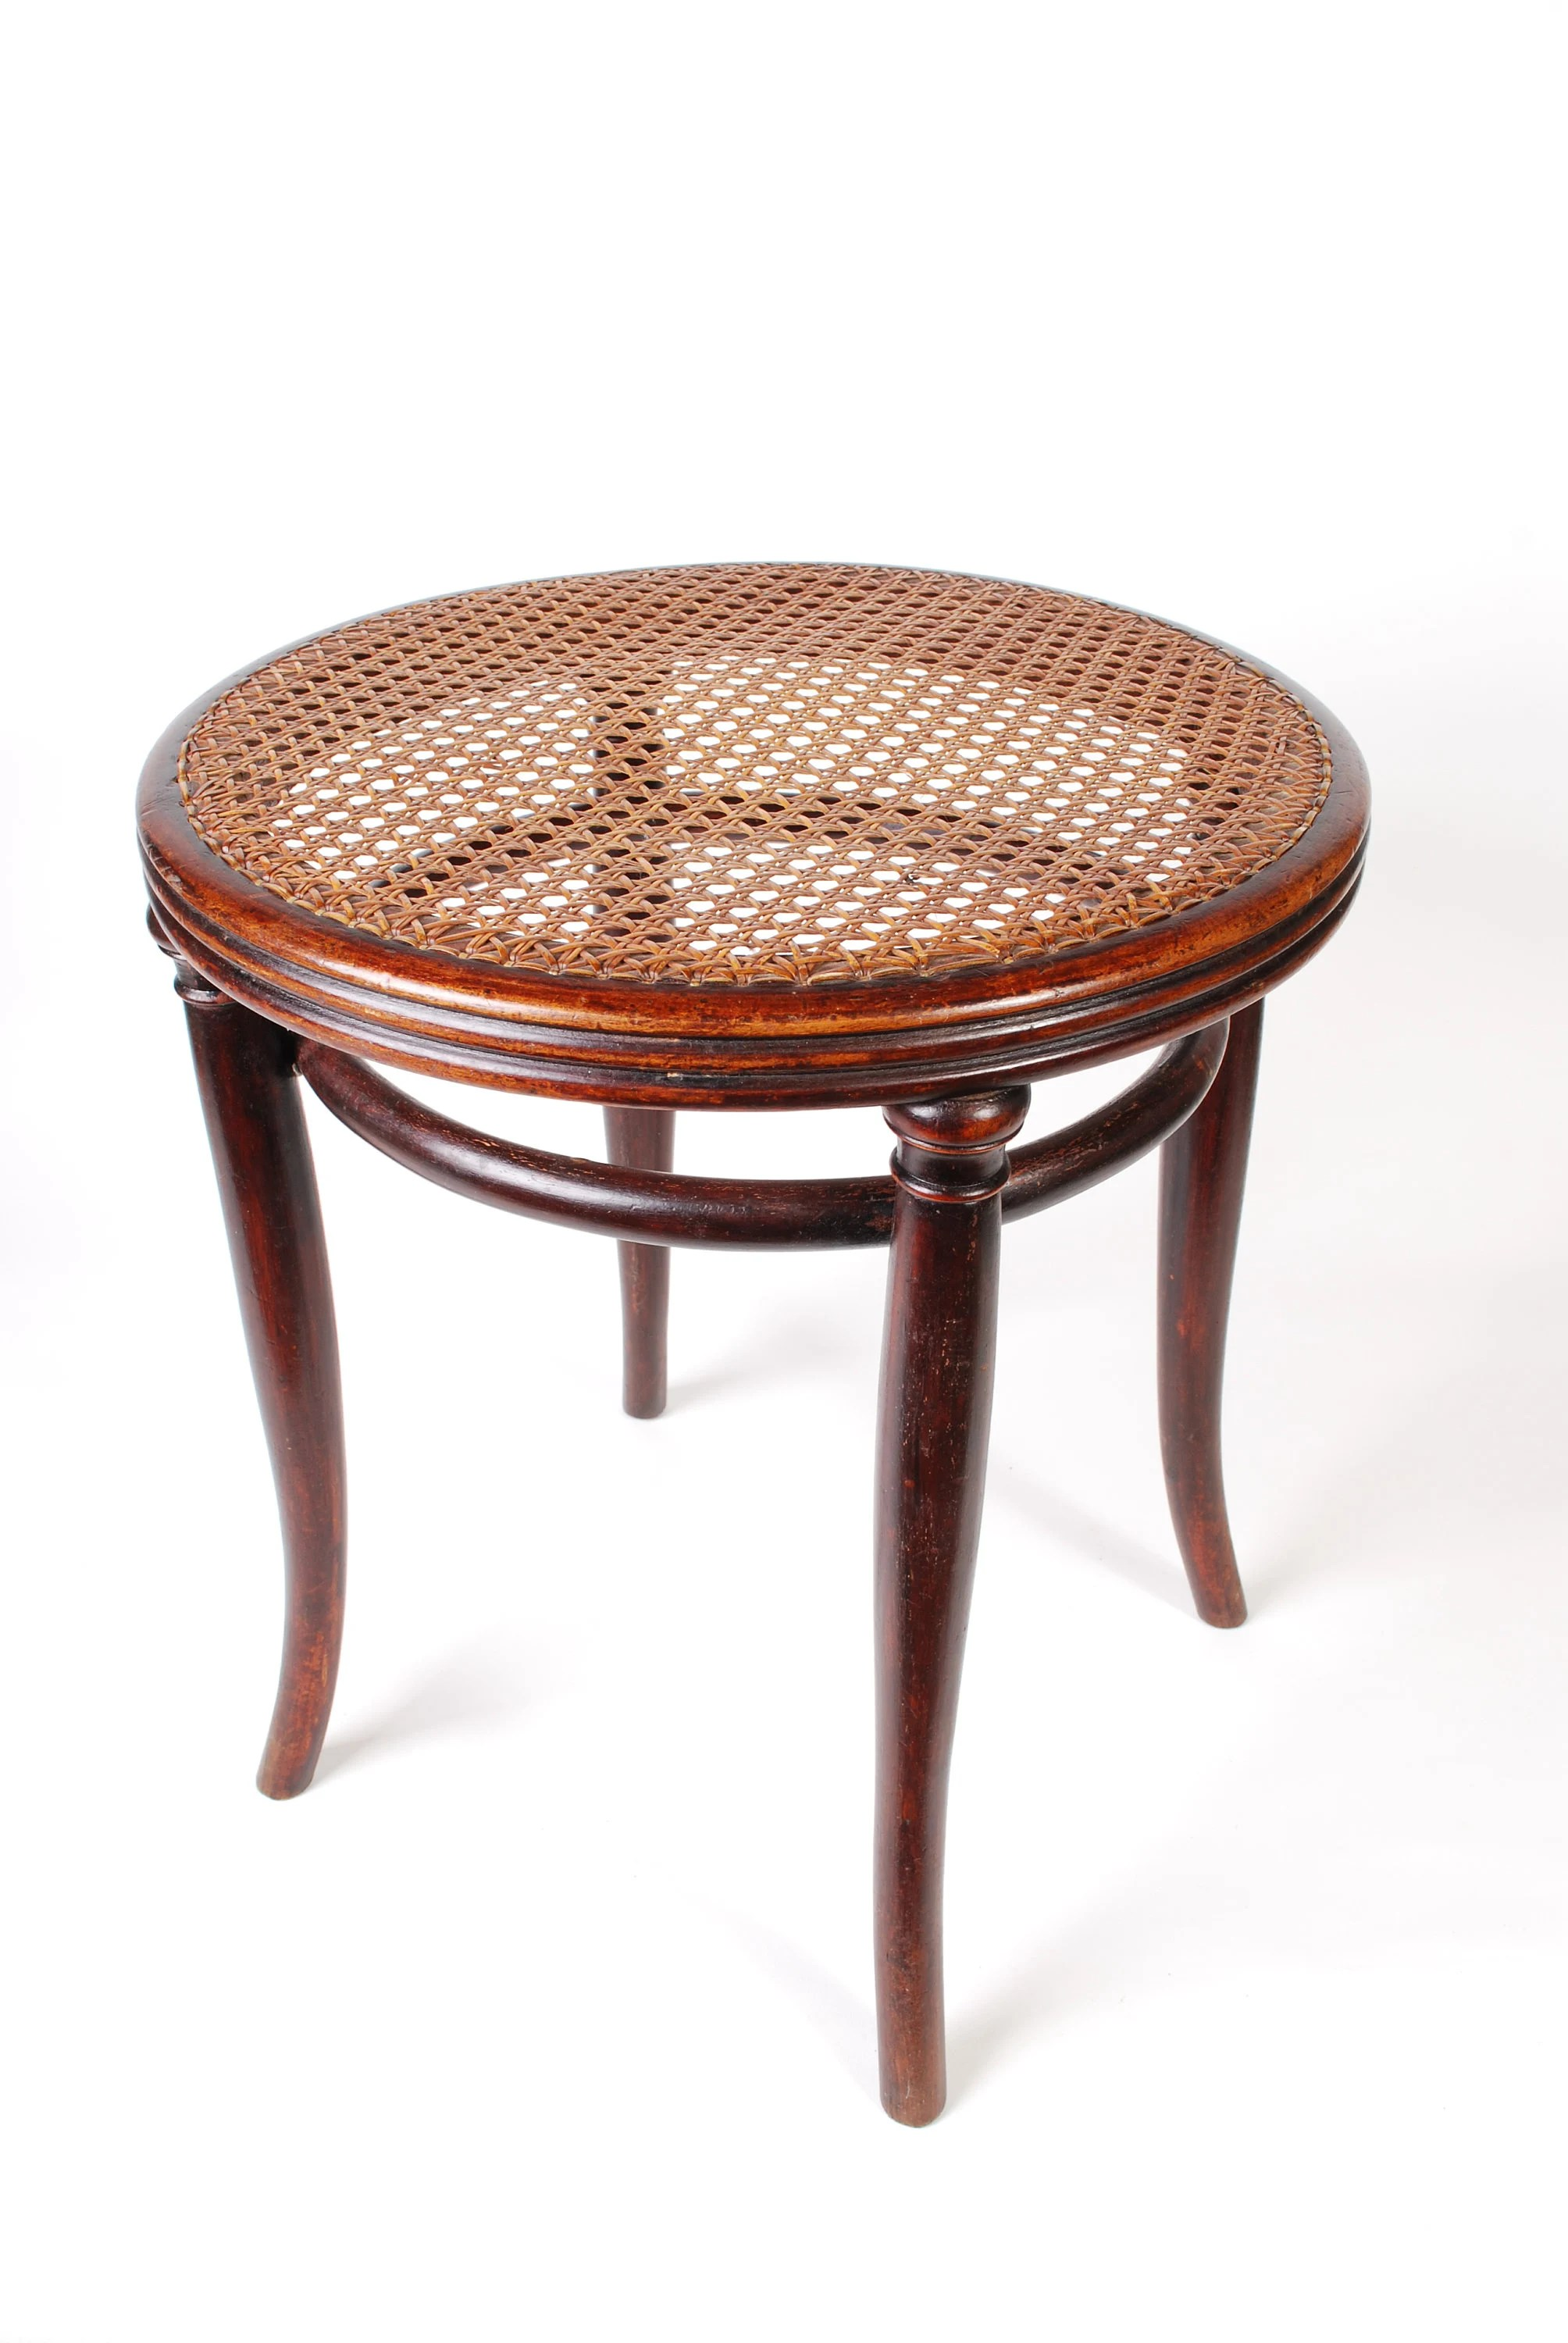 Hocker Vintage Thonet Stool Antique Bentwood Cane Hocker Chair Jugendtstil Secessionist Elegant Vintage Stool From The 1910th More Than 100 Years Old